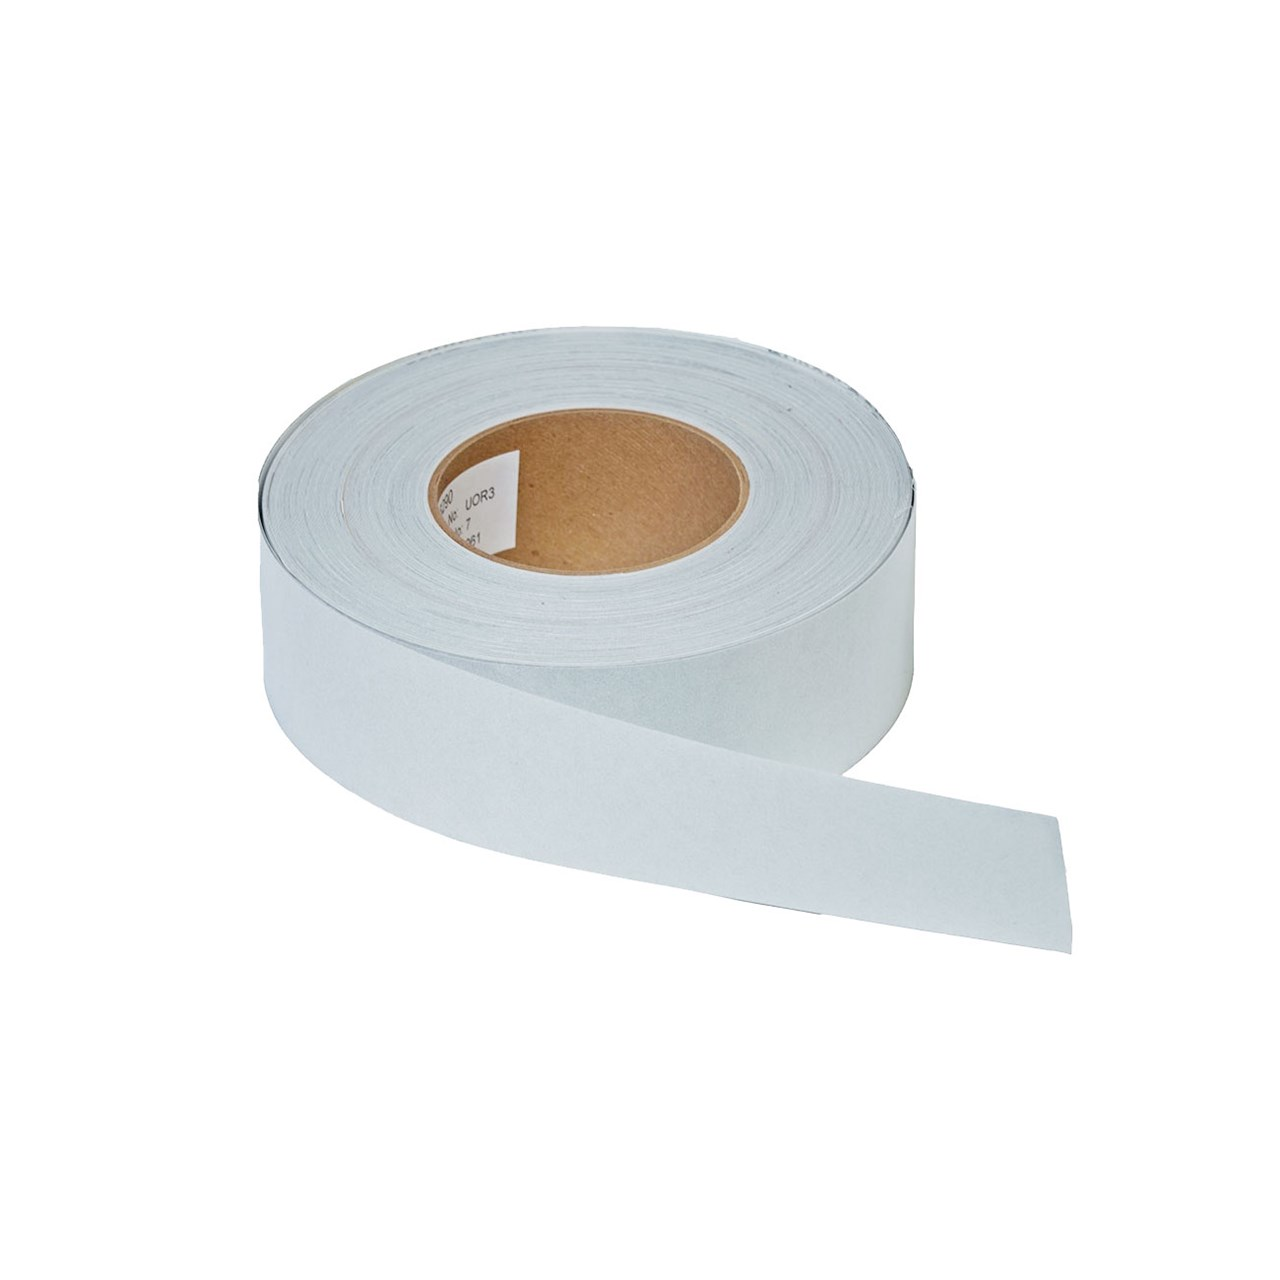 Maxiaids White Reflective Tape Roll For Ambutech Canes